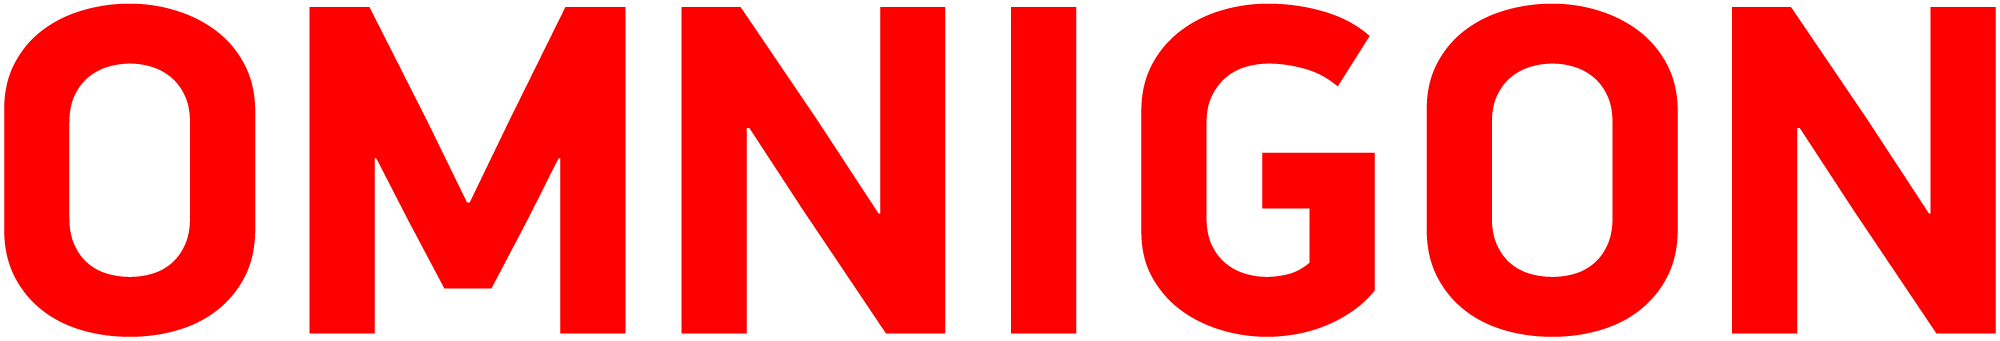 omnigon_wordmark-red.png